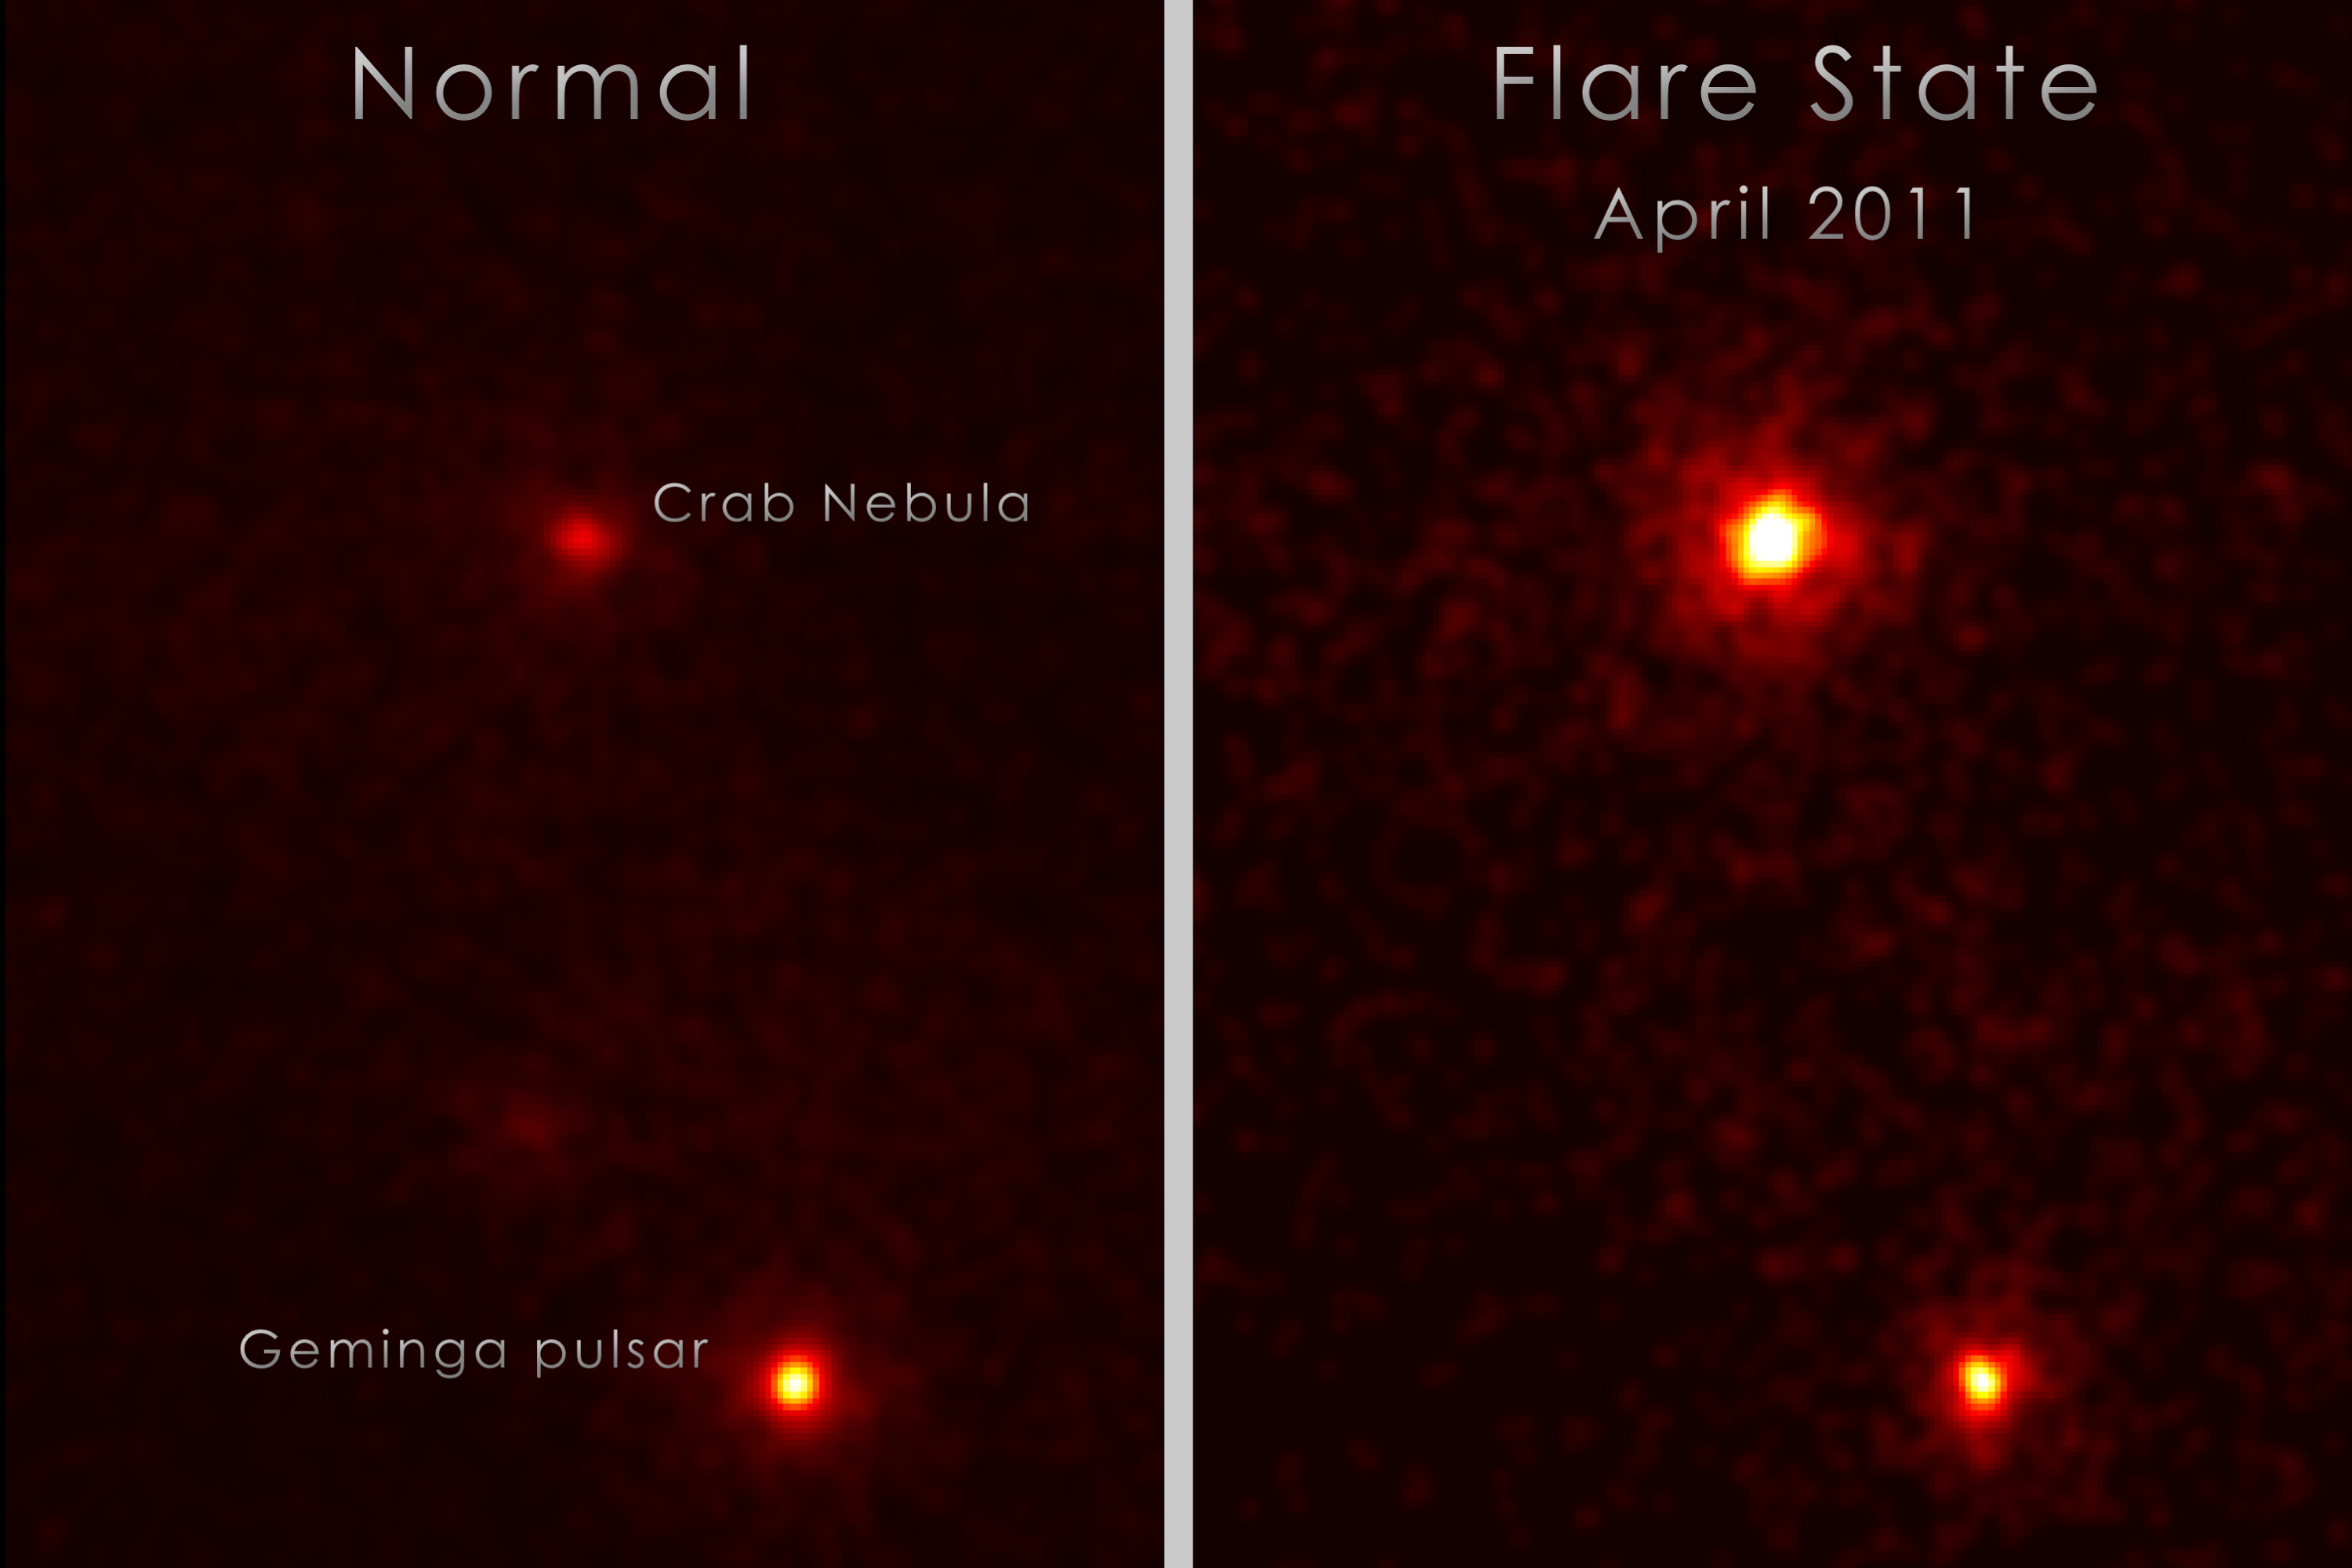 Crab Nebula Superflare - Fermi's Large Area Telescope